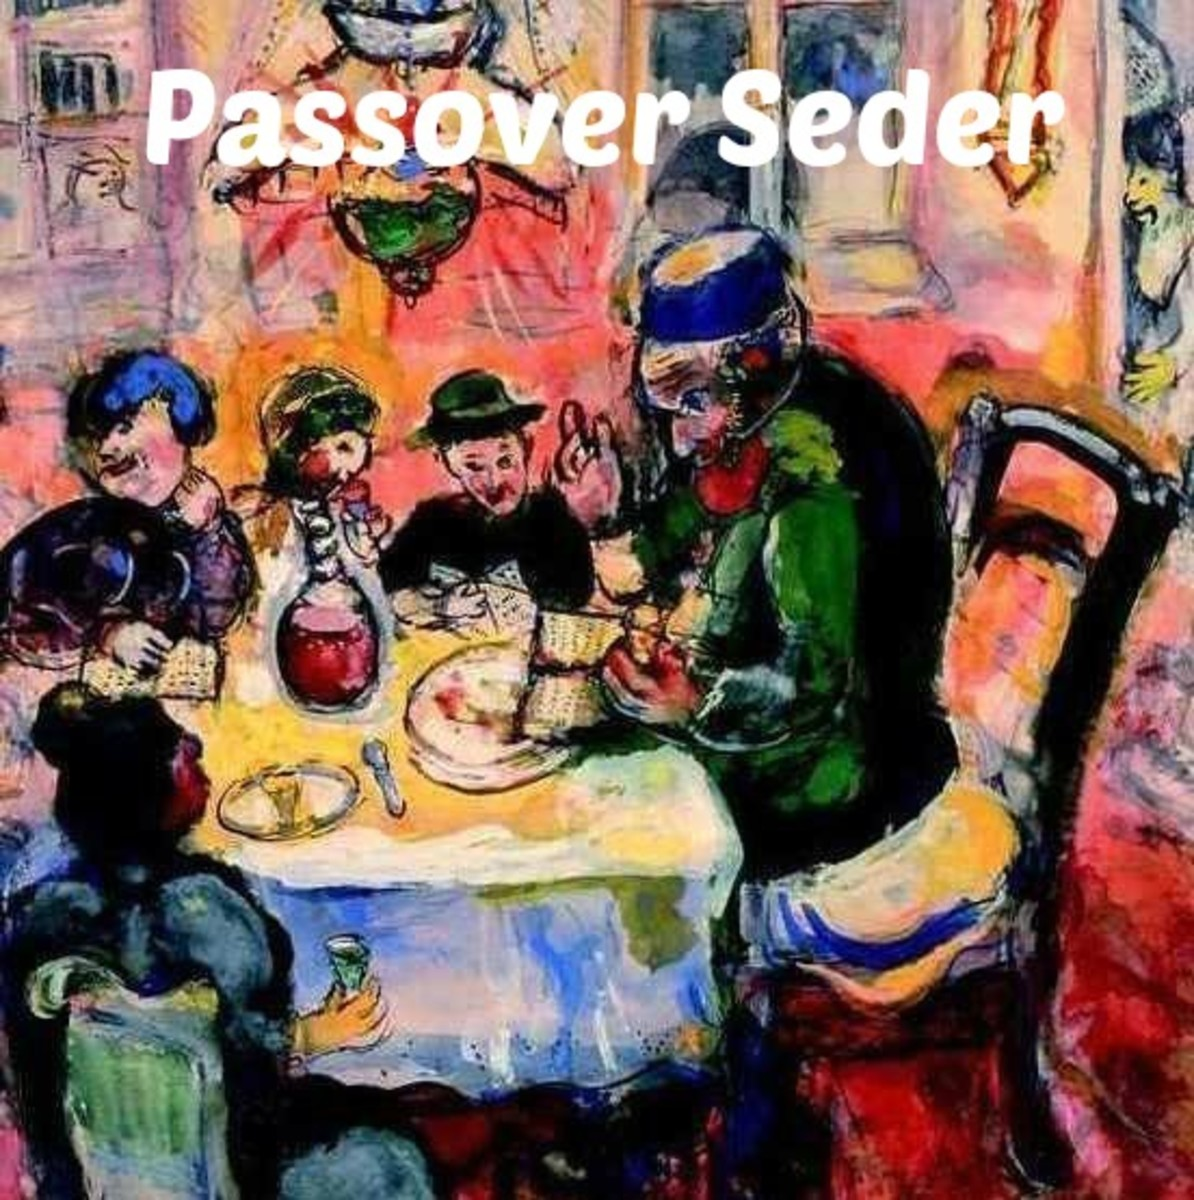 THE PASSOVER SEDER and Seder Plate